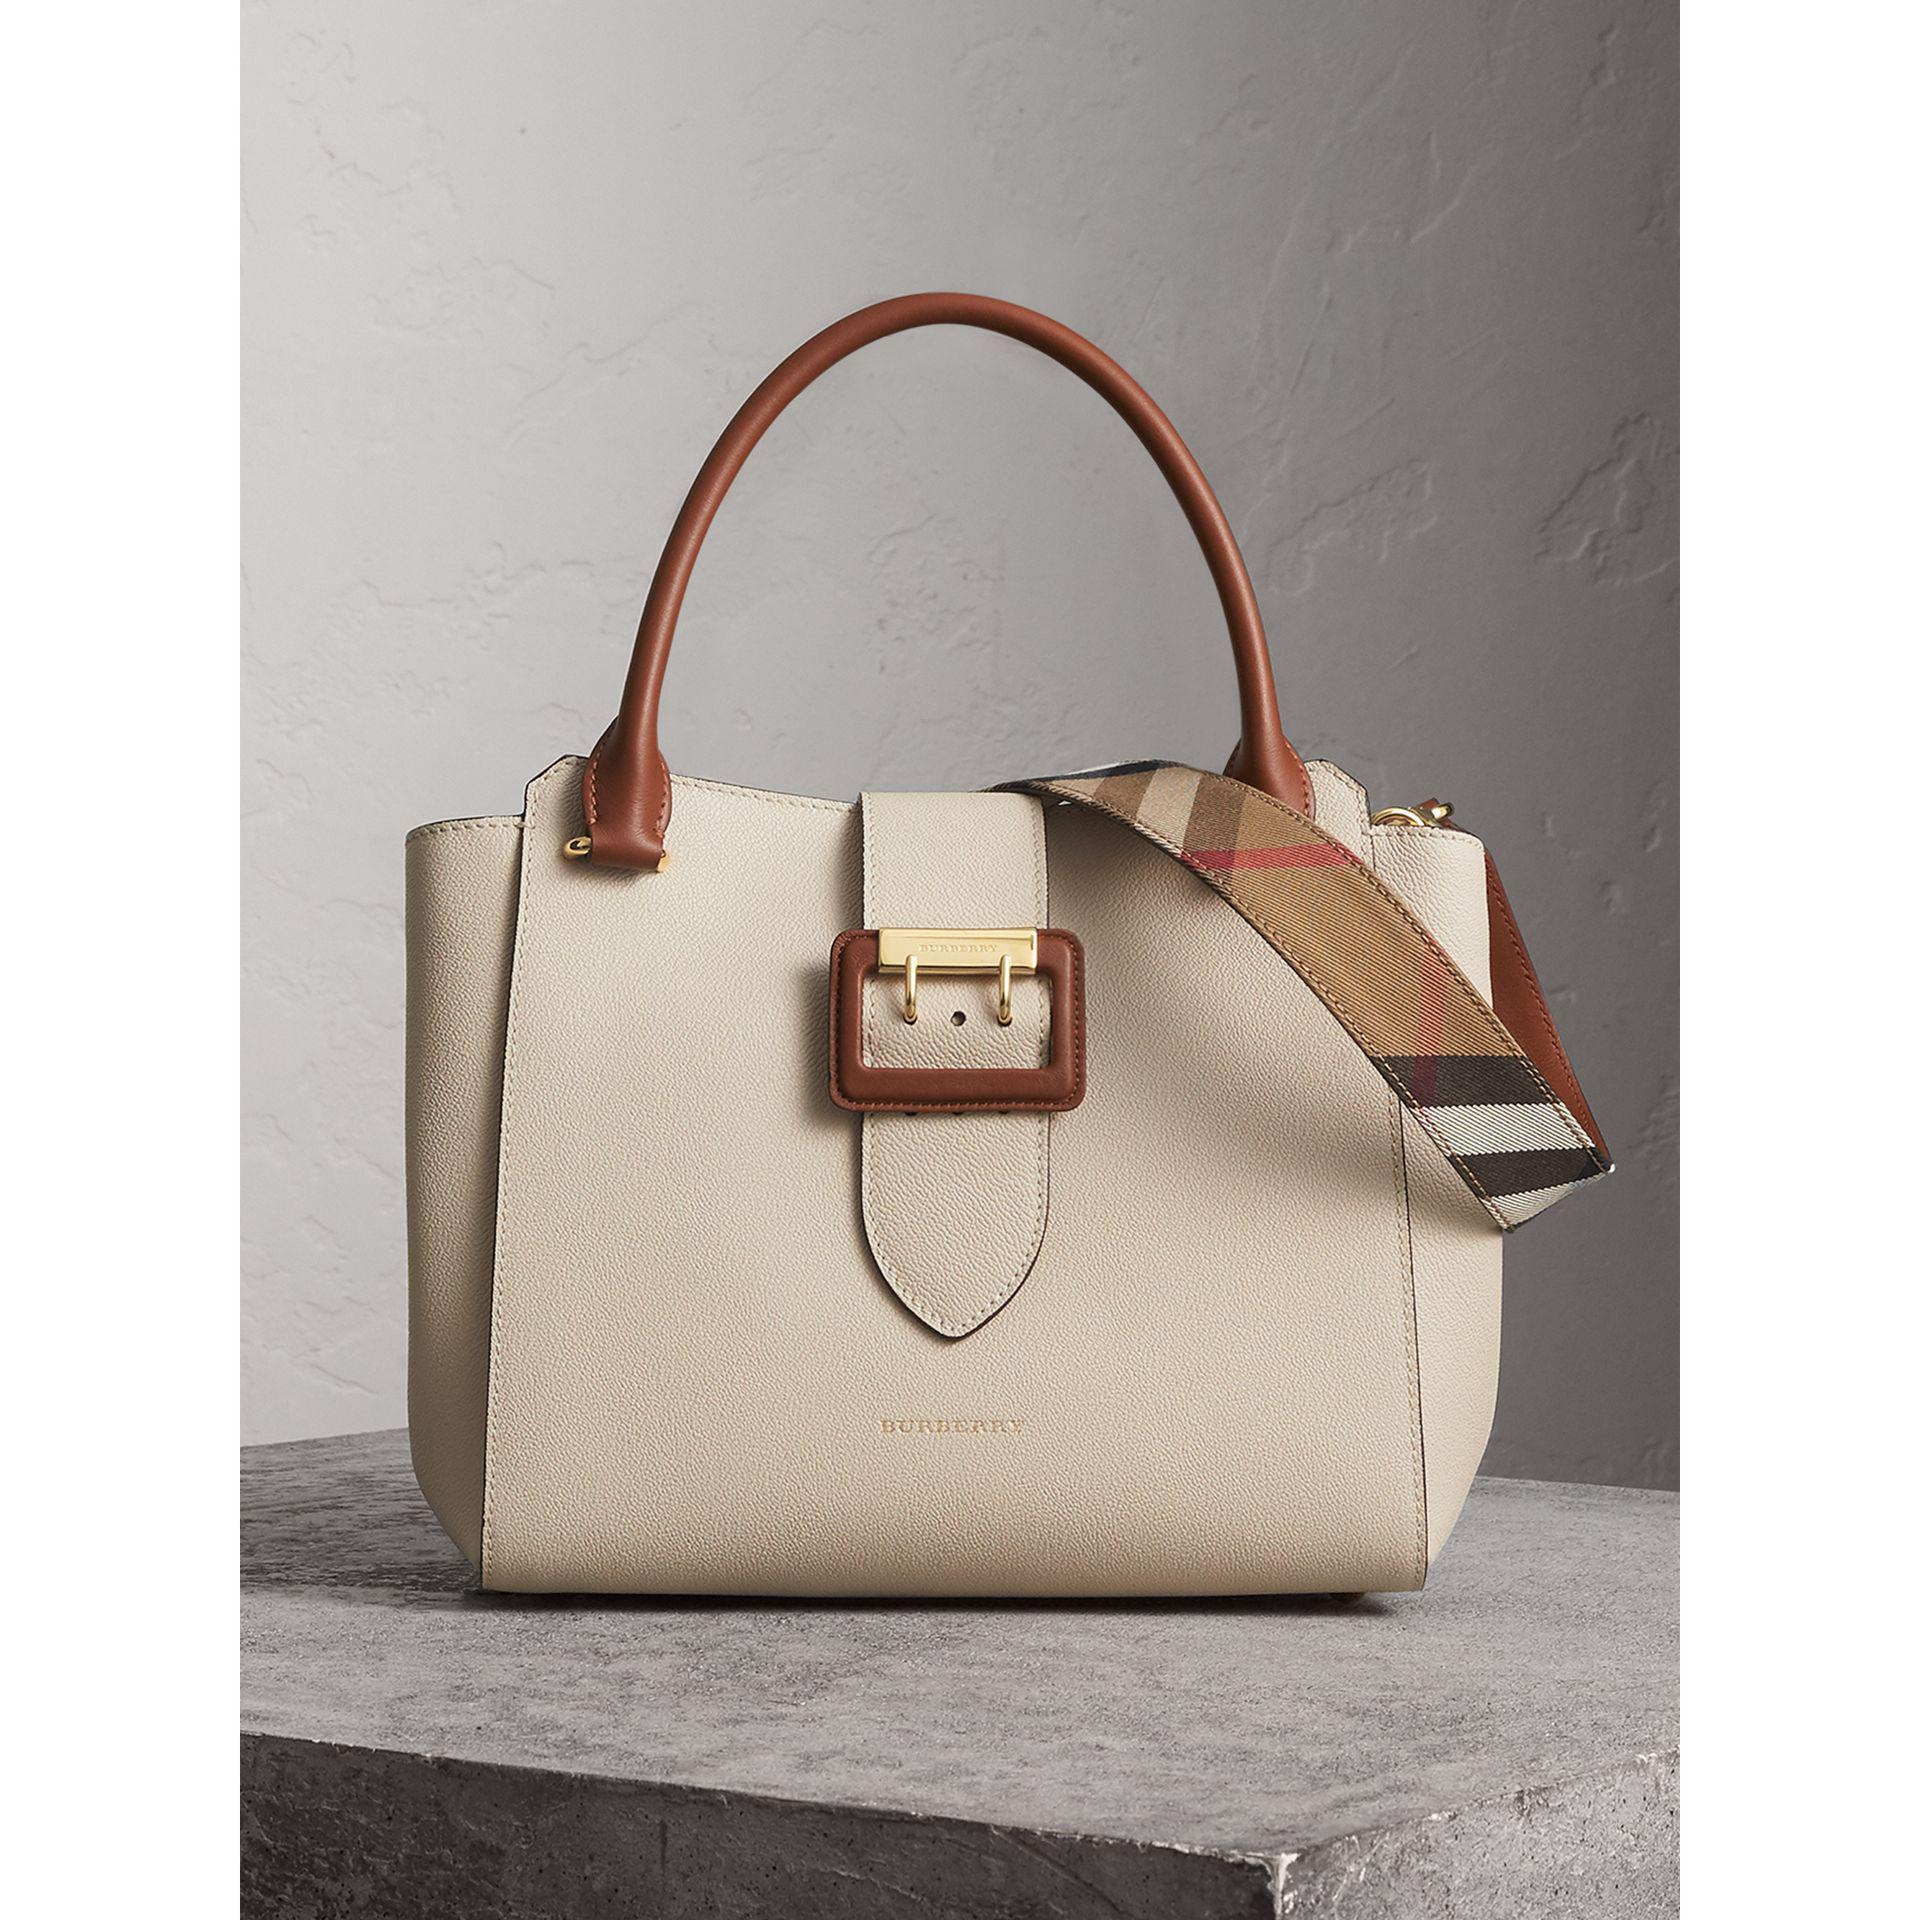 a05d8e36fed8 Lyst - Burberry The Medium Buckle Tote In Grainy Leather